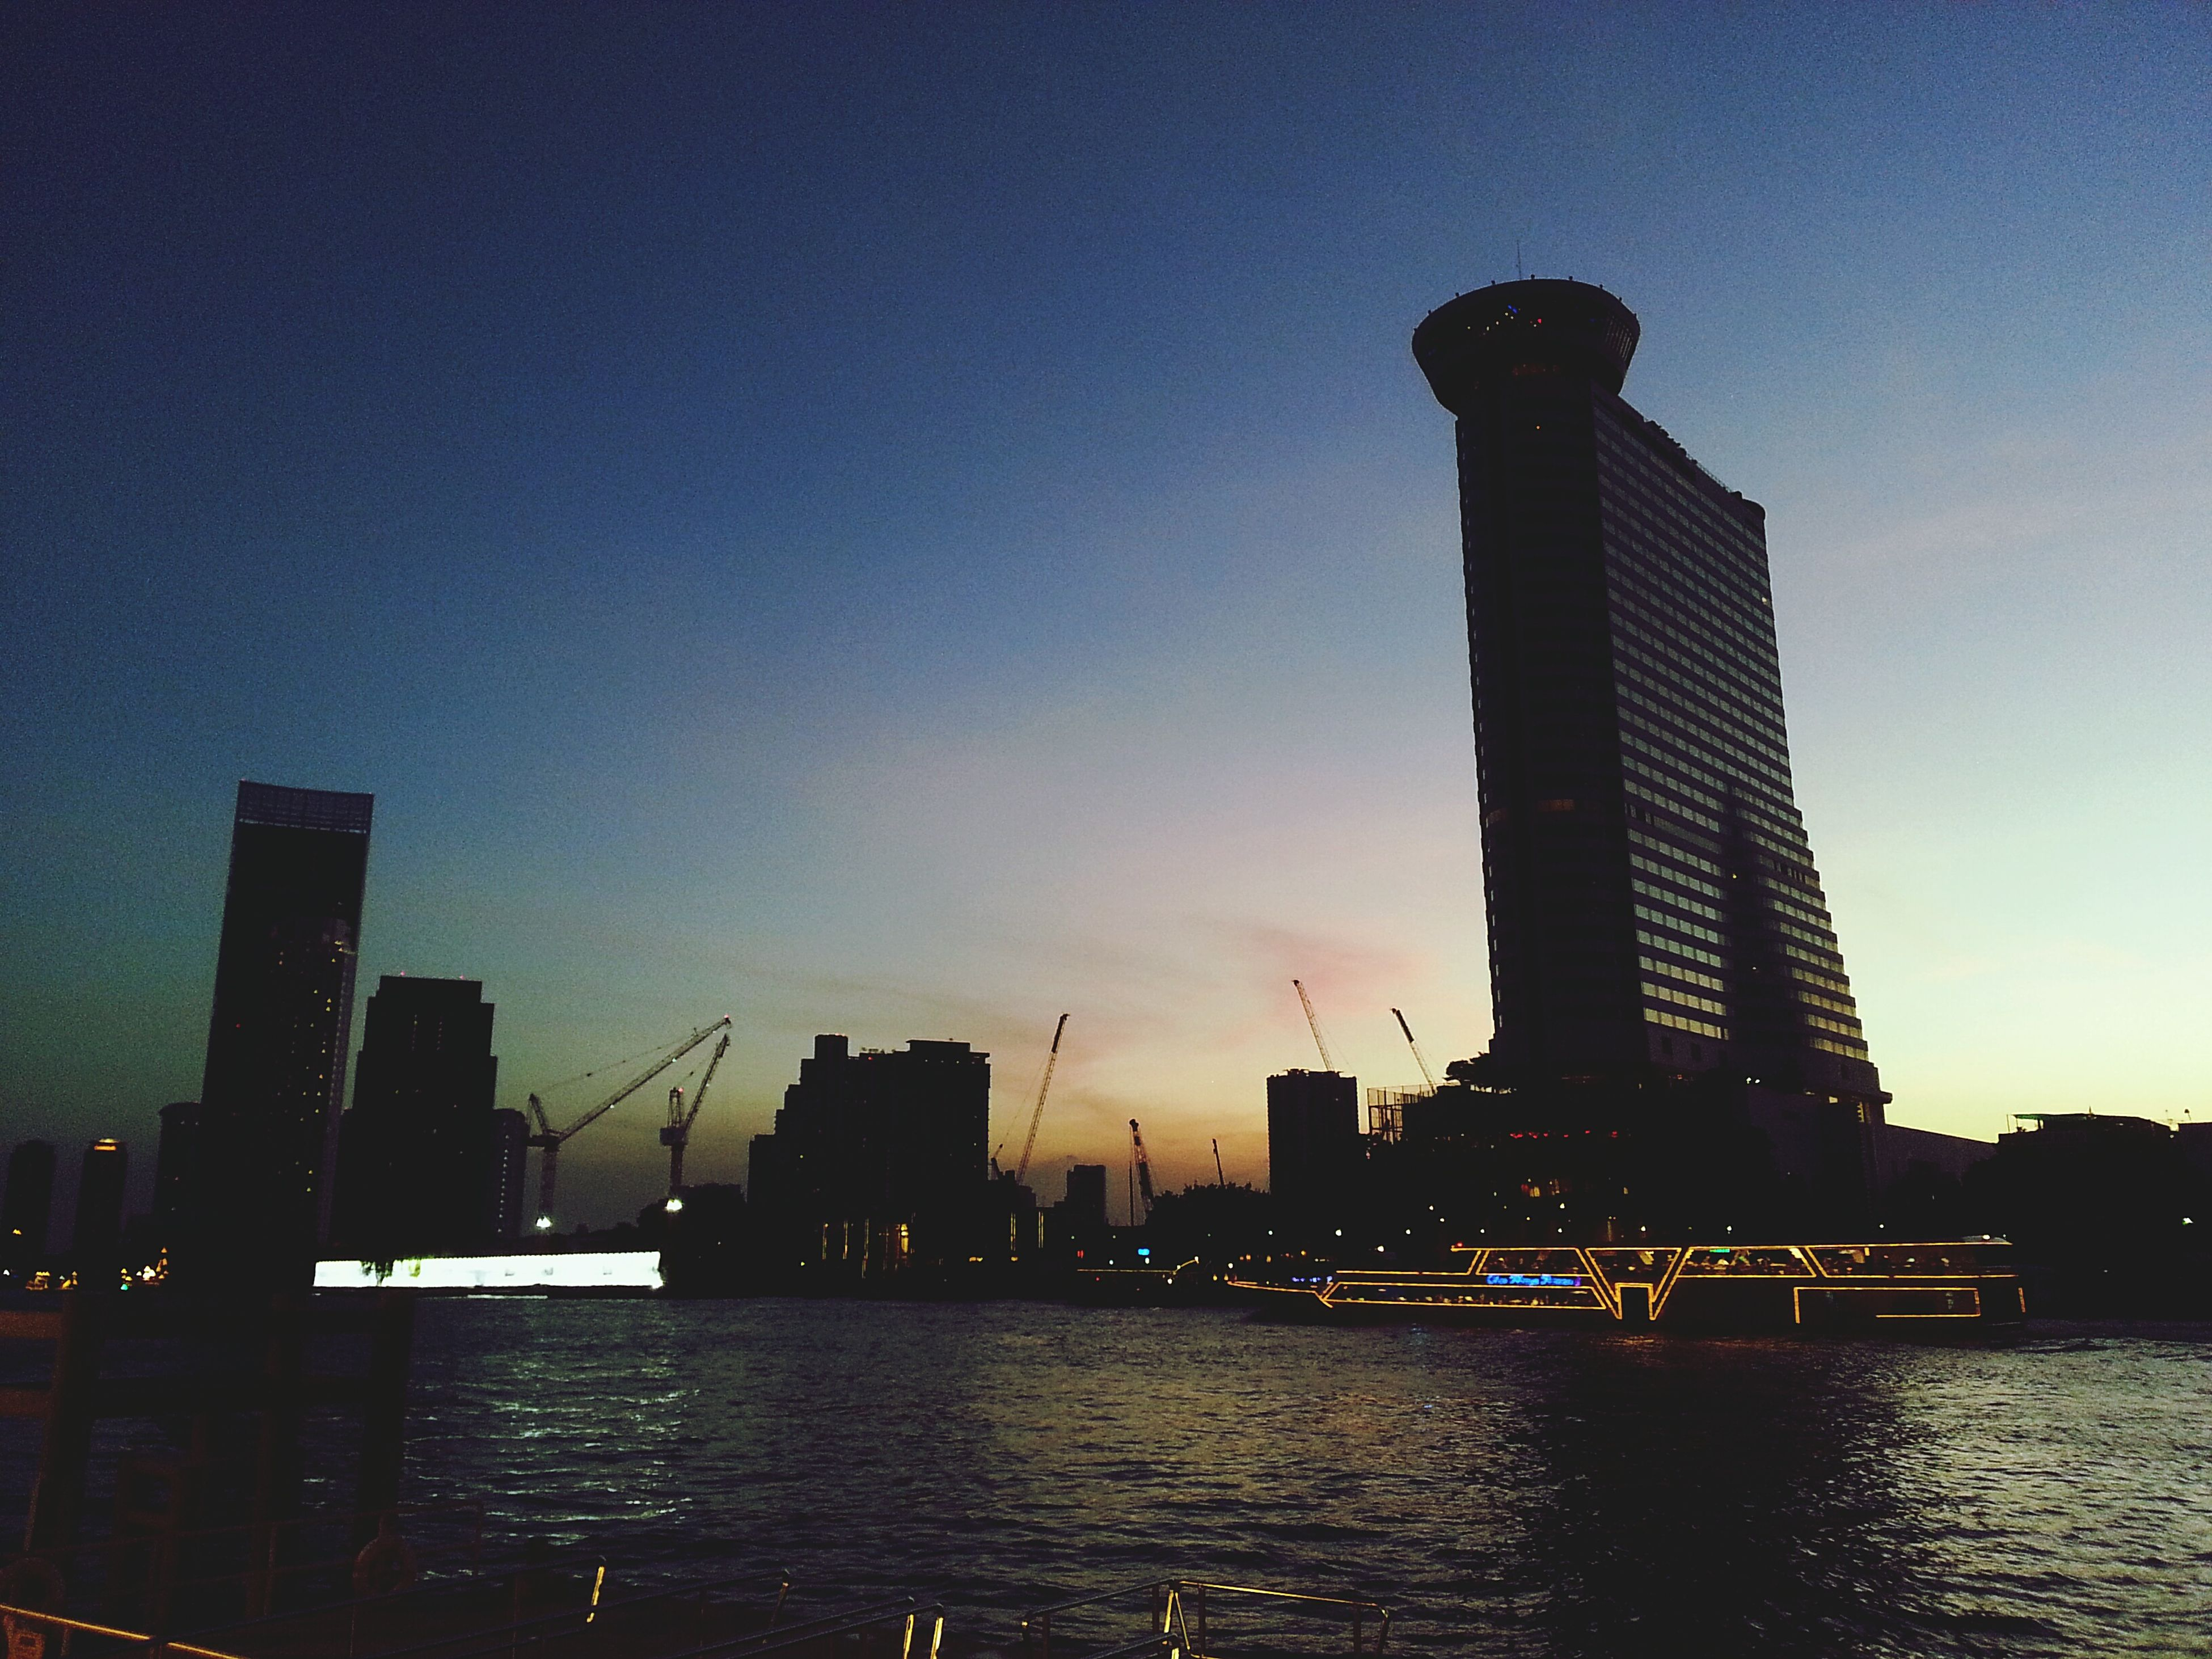 architecture, built structure, building exterior, city, water, waterfront, river, skyscraper, silhouette, sky, tall - high, sunset, tower, urban skyline, dusk, crane - construction machinery, low angle view, modern, cityscape, reflection